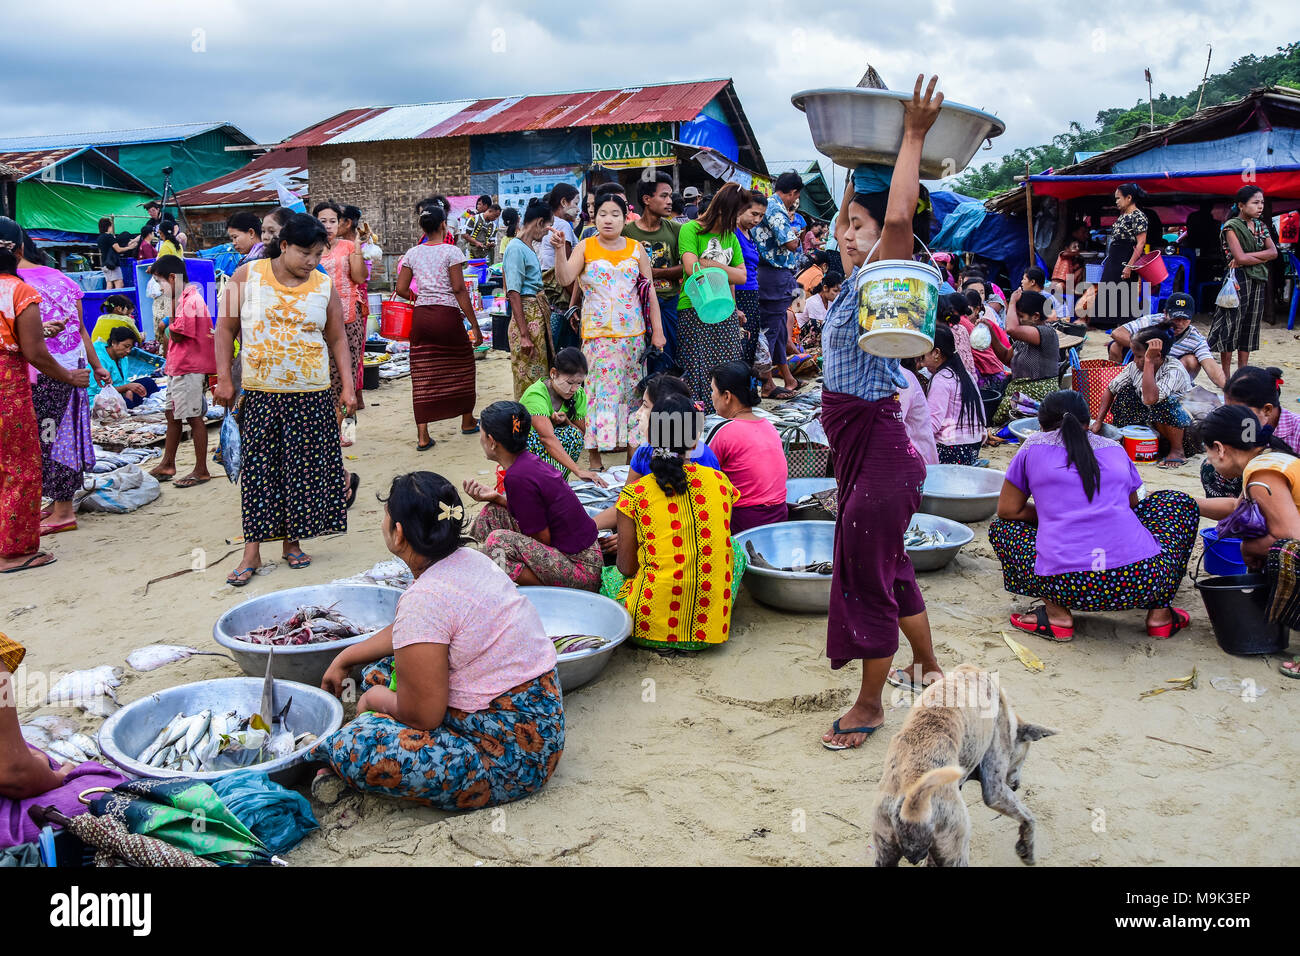 Dawei, Myanmar - July 12, 2015: Fresh market, where sellers and buyers meet to sell and buy fresh and raw food in Dawei, Myanmar - Stock Image